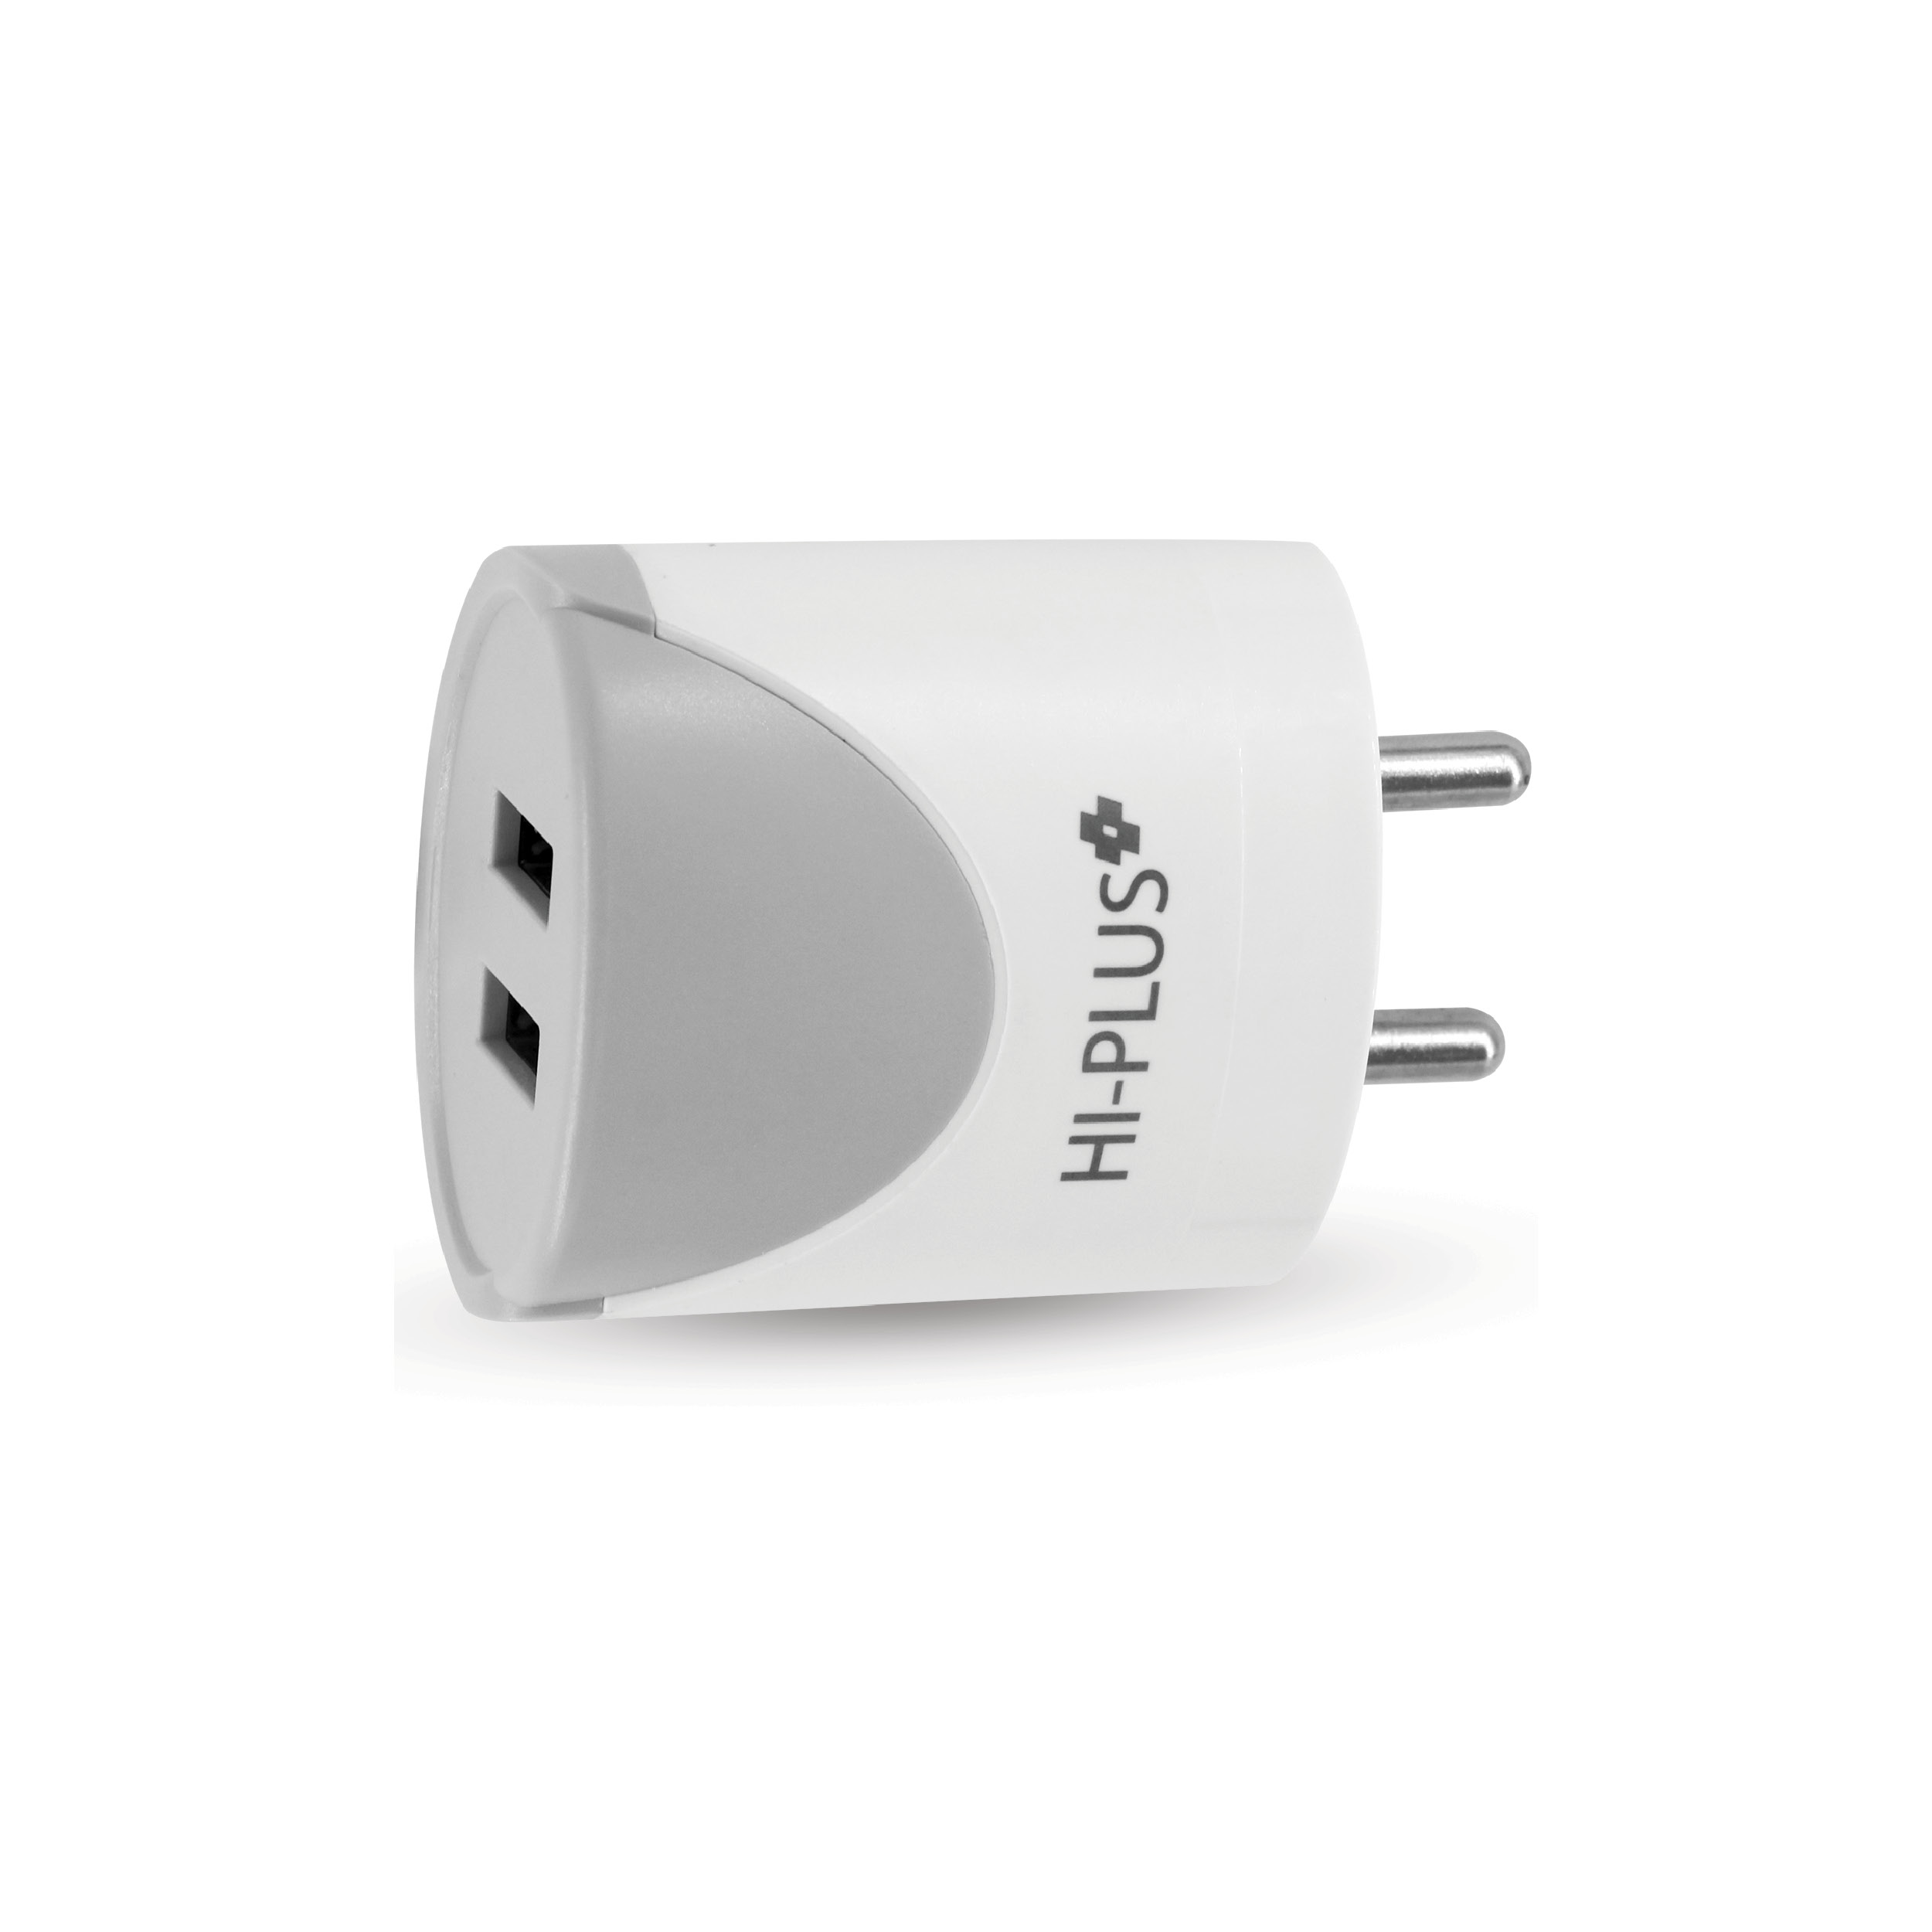 Fast USB Charger Adapter with USB Cable